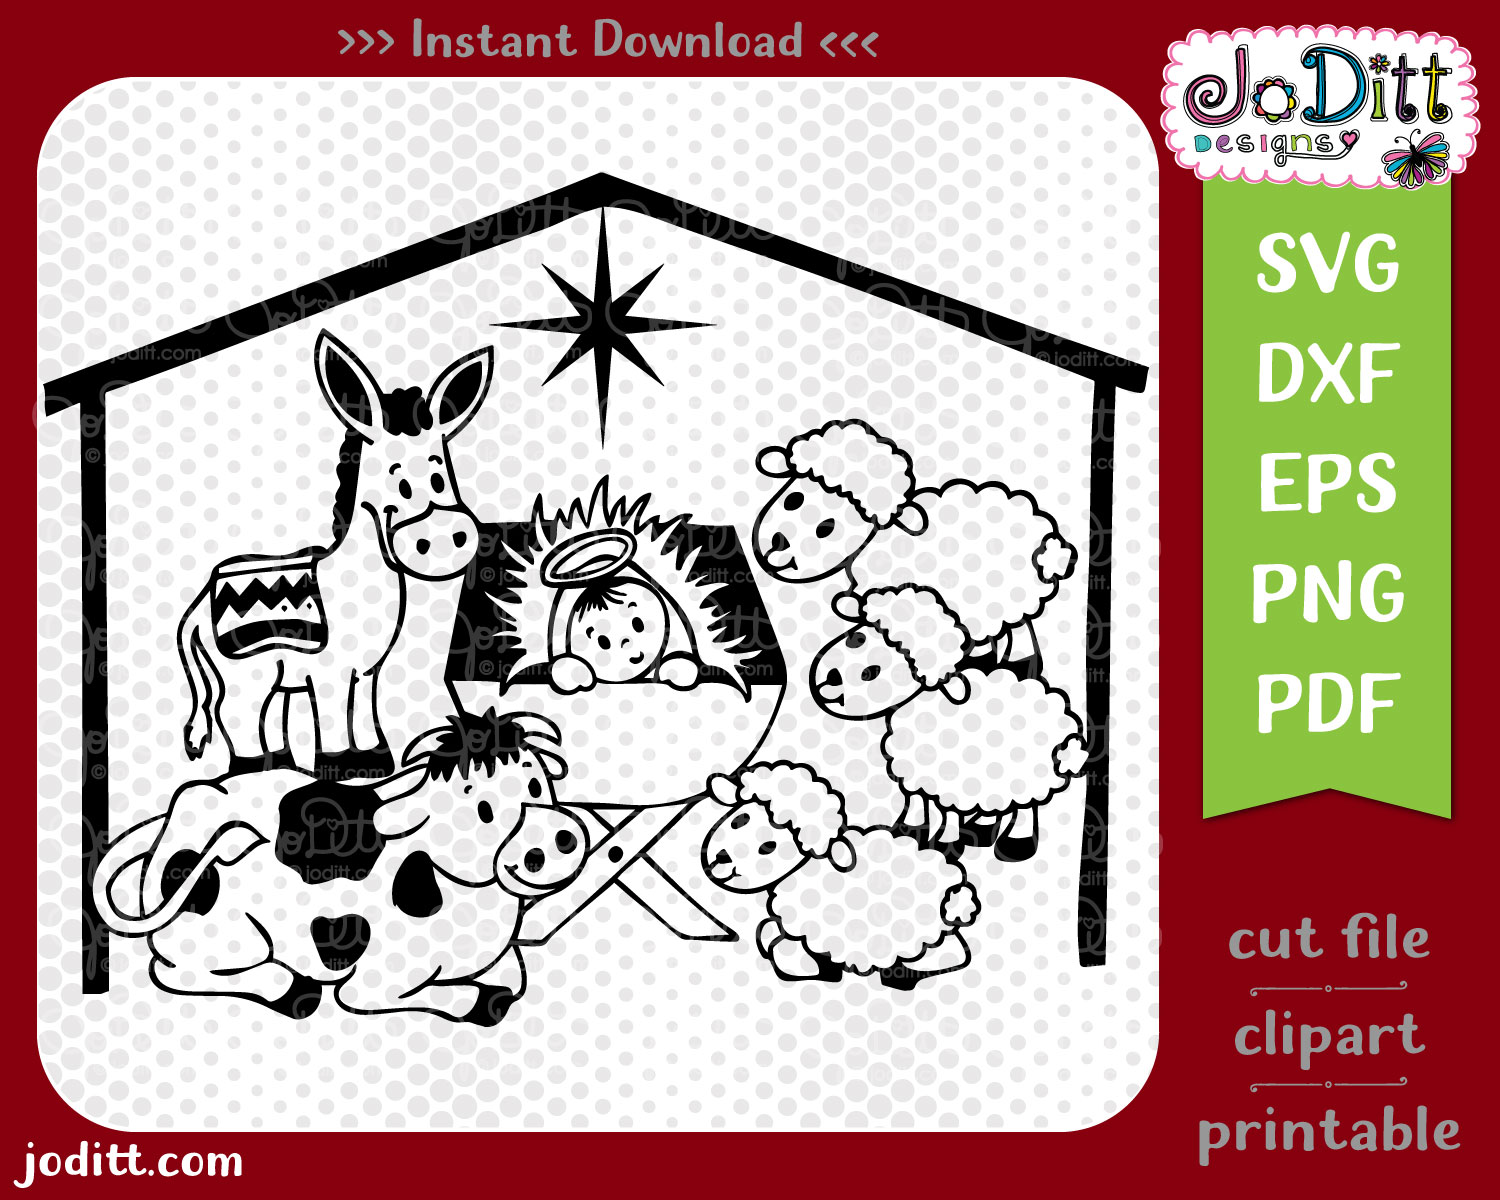 nativity-svg-preview-JoDittDesigns